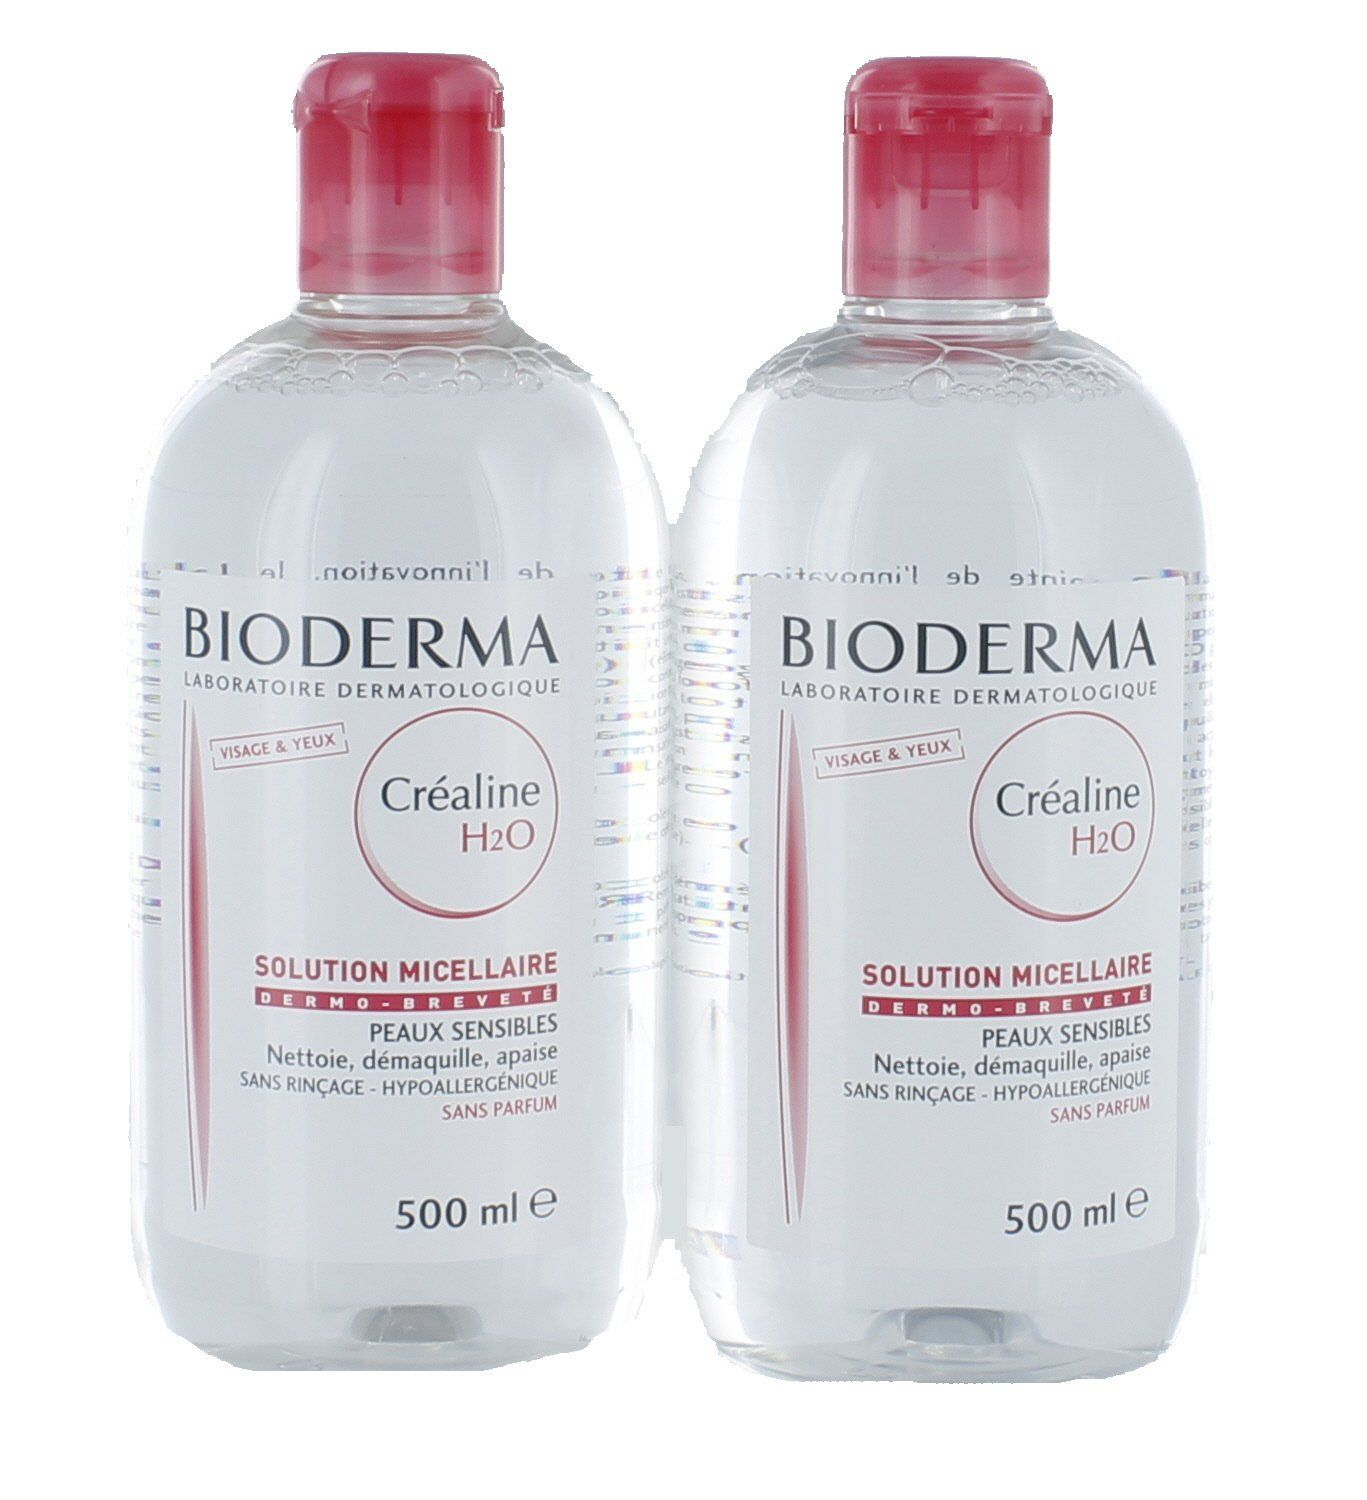 Bioderma Créaline H2O Micelle Solution 2 x 500ml Amazon